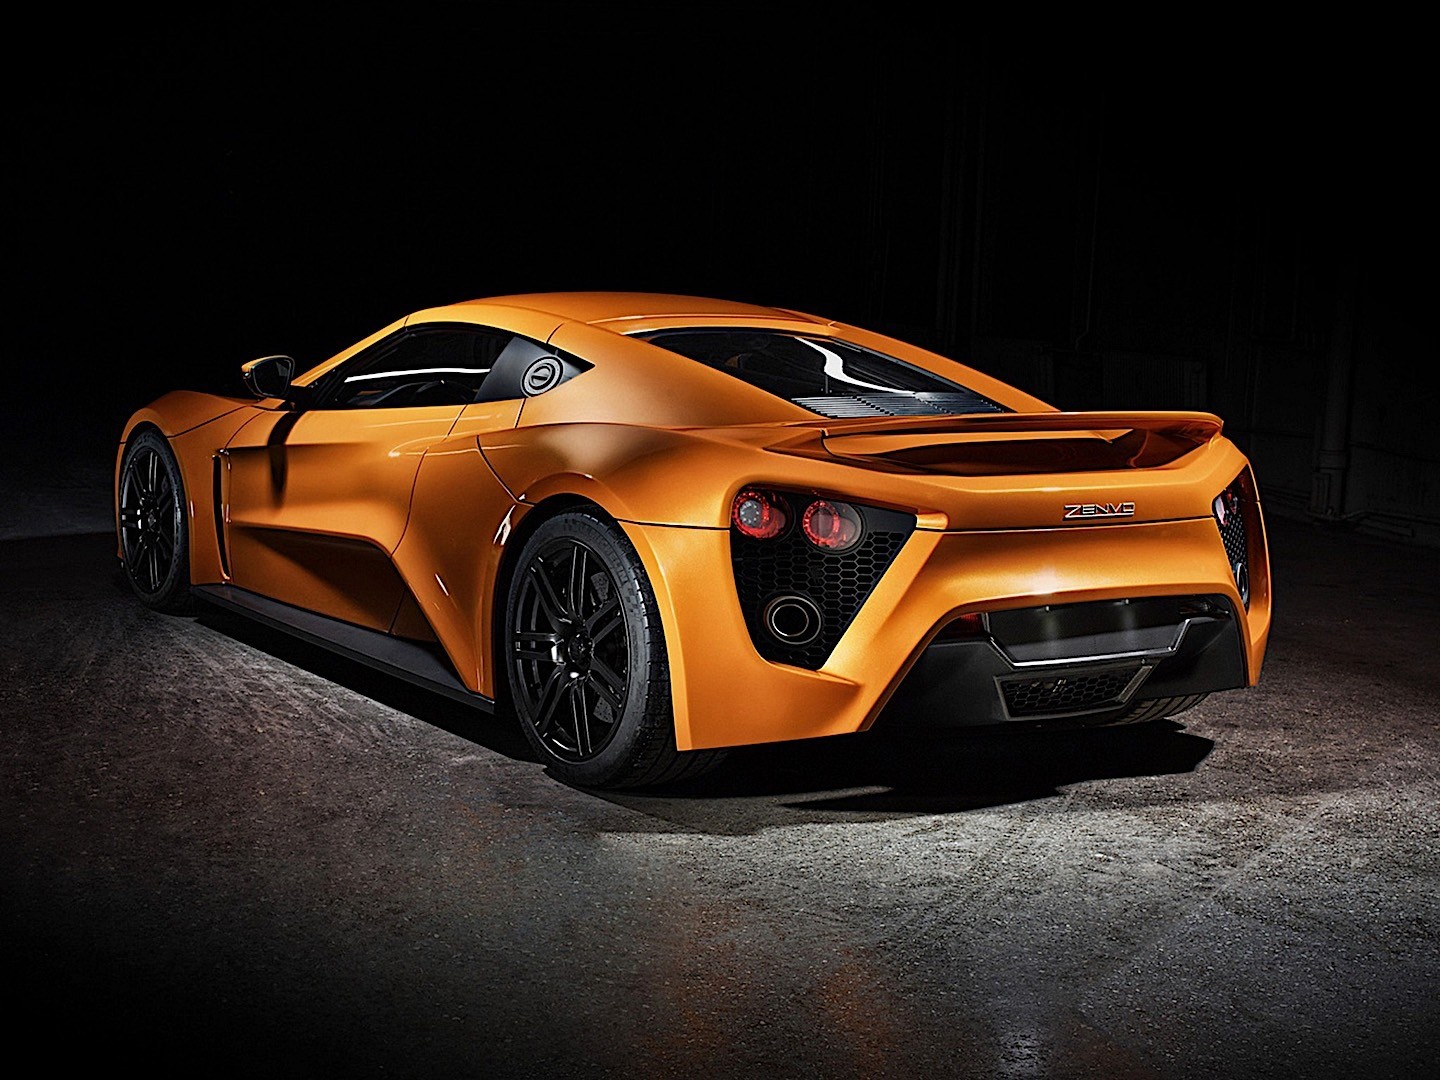 Cool Modified Cars Wallpapers Zenvo St1 Specs Amp Photos 2009 2010 2011 2012 2013